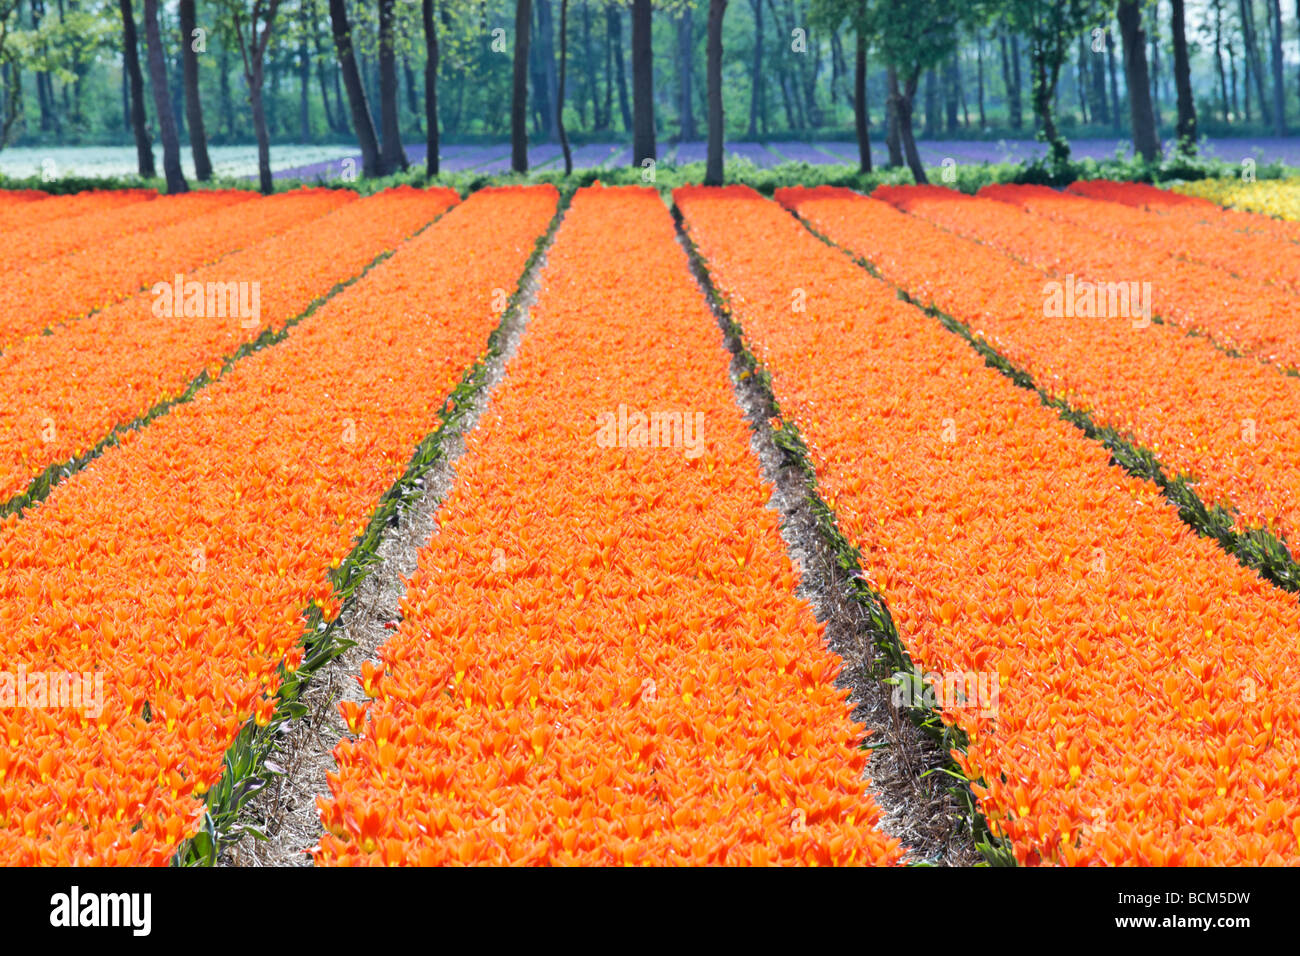 Tulip fields of the Bollenstreek, South Holland, Netherlands - Stock Image